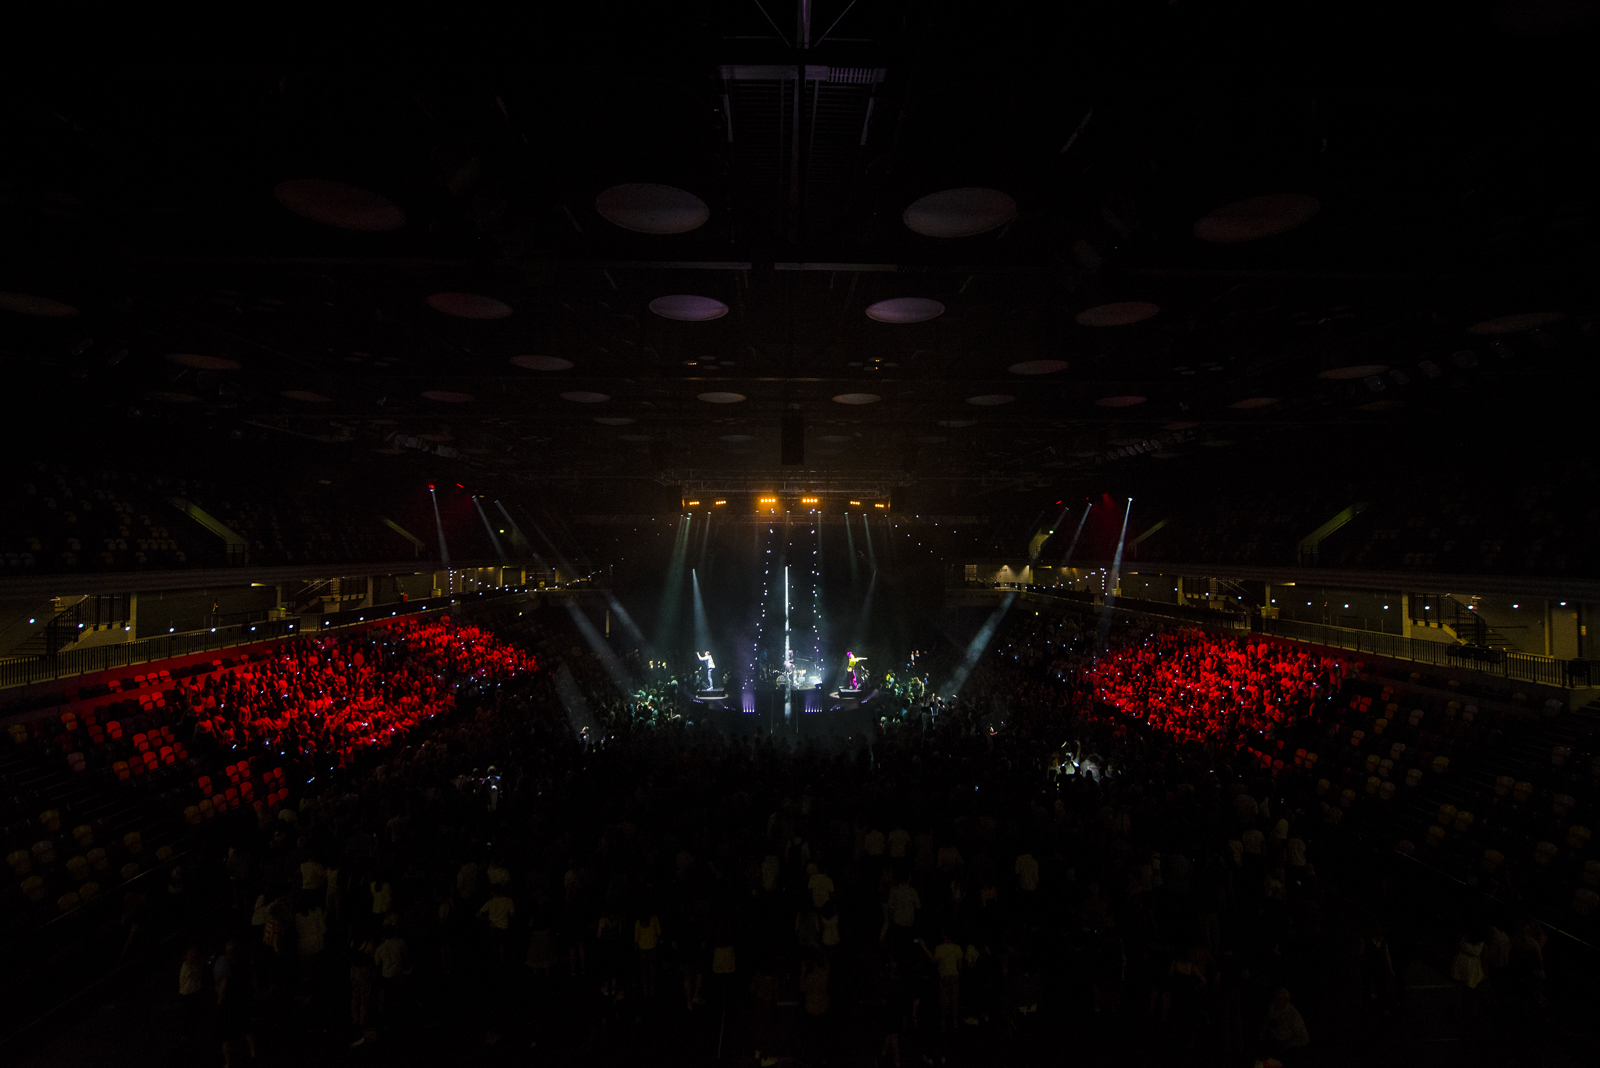 copperbox_20-4-18-image-178.jpg